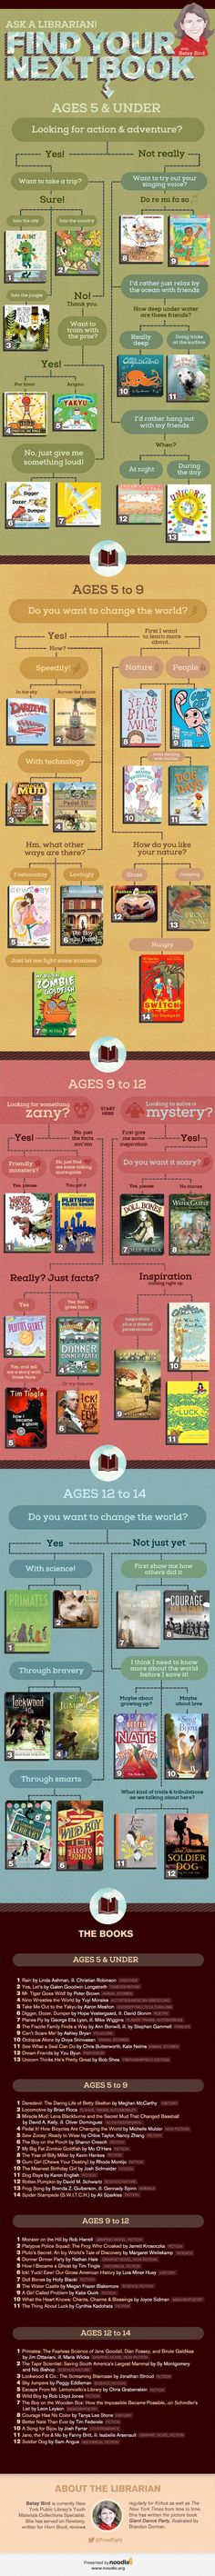 Great idea for creating your own from your library collection.  Fantastic graphic for finding your next book! From @FuseEight and @nikki striefler striefler striefler striefler striefler striefler Sims Education #kidlit #tlchat #titlechat